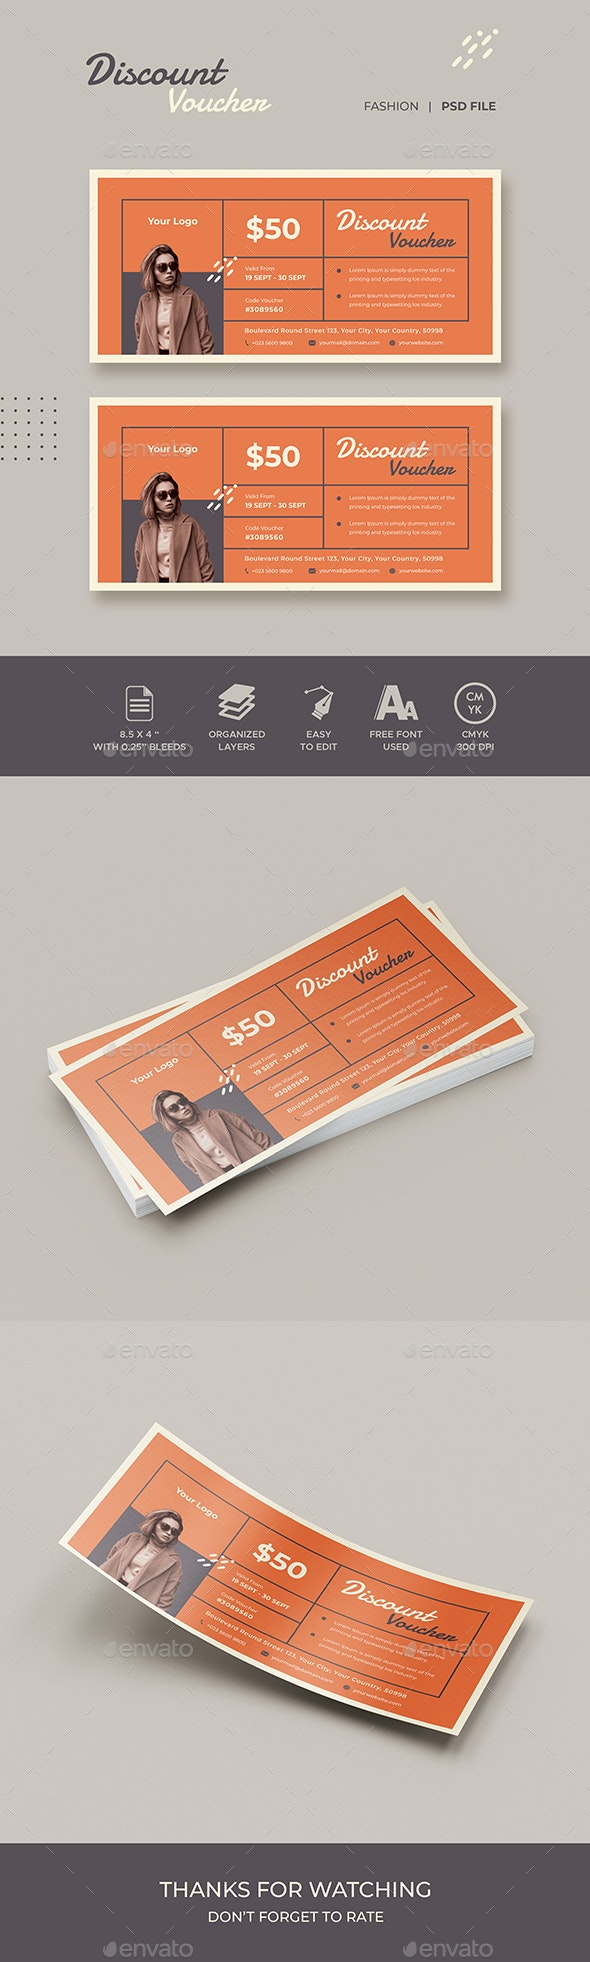 Gift Voucher Fashion Template - Loyalty Cards Cards & Invites